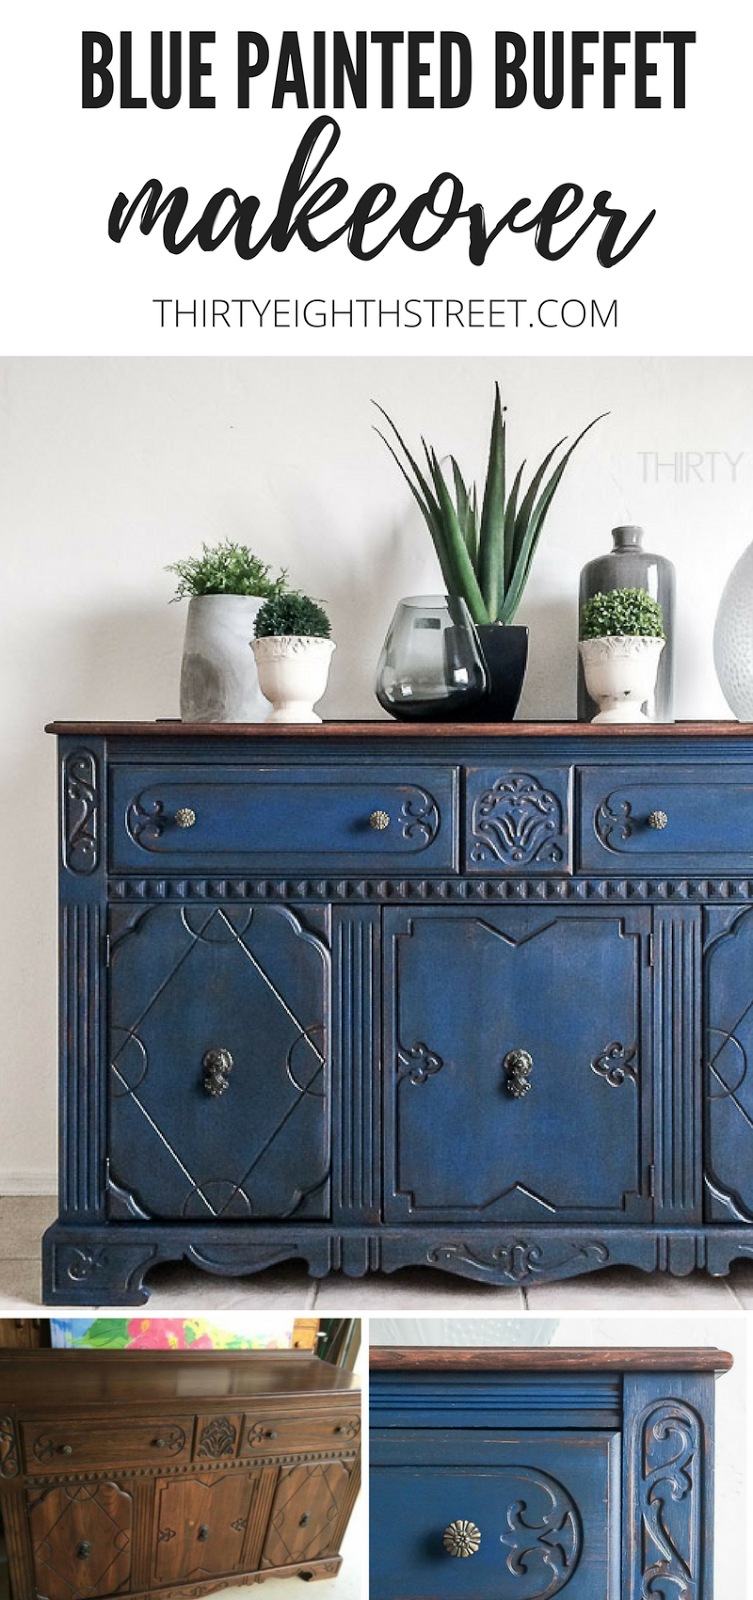 Blue Painted Buffet Makeover Distressed Furniture Painting Distressed Furniture Recycled Furniture